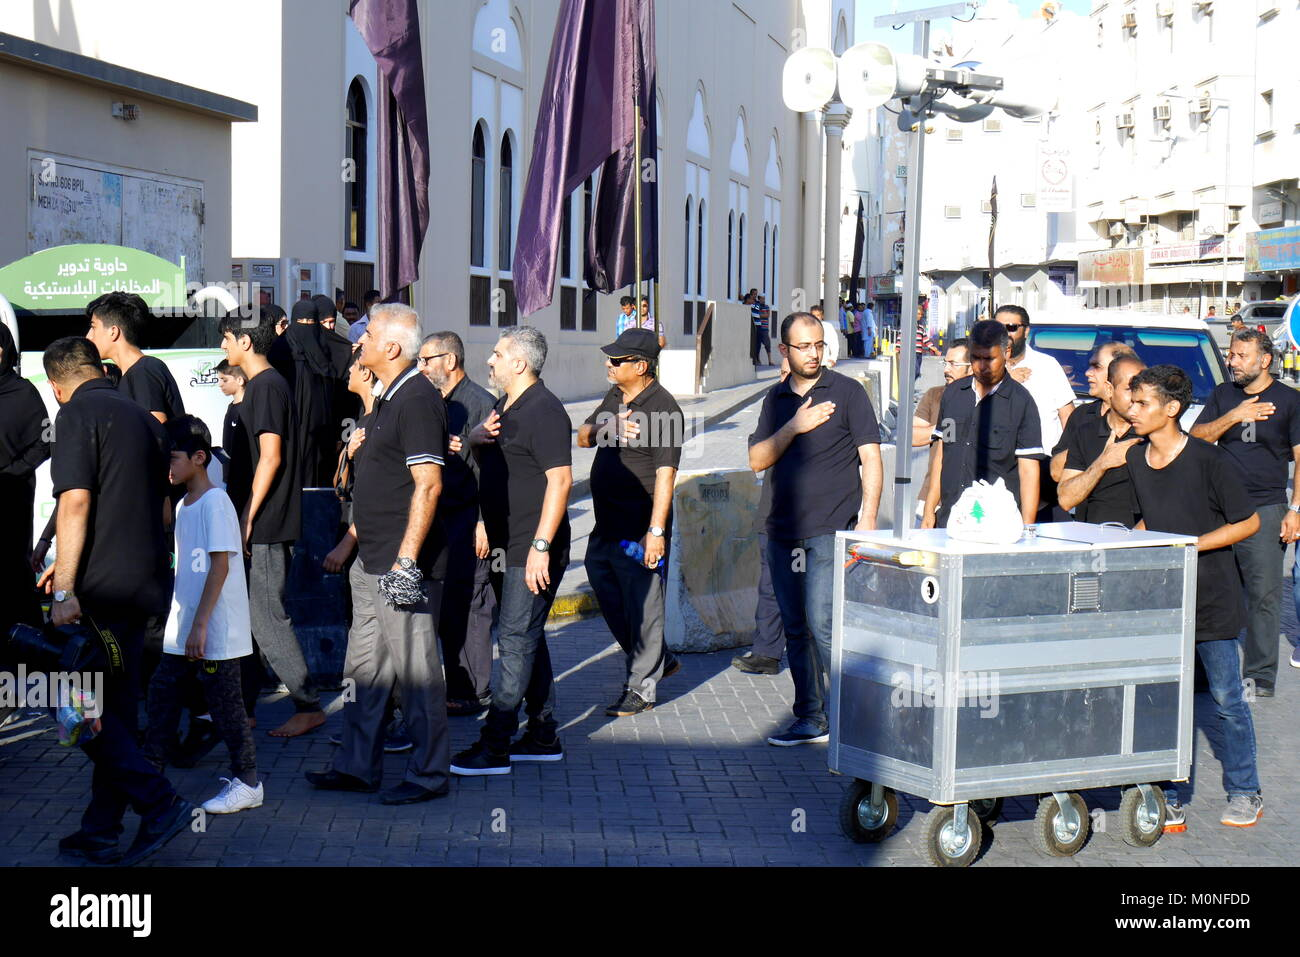 Shia Moslems march in Manama, Bahrain, at Ashura, to commemorate the death of Prophet Mohammed's grandson Hussein - Stock Image